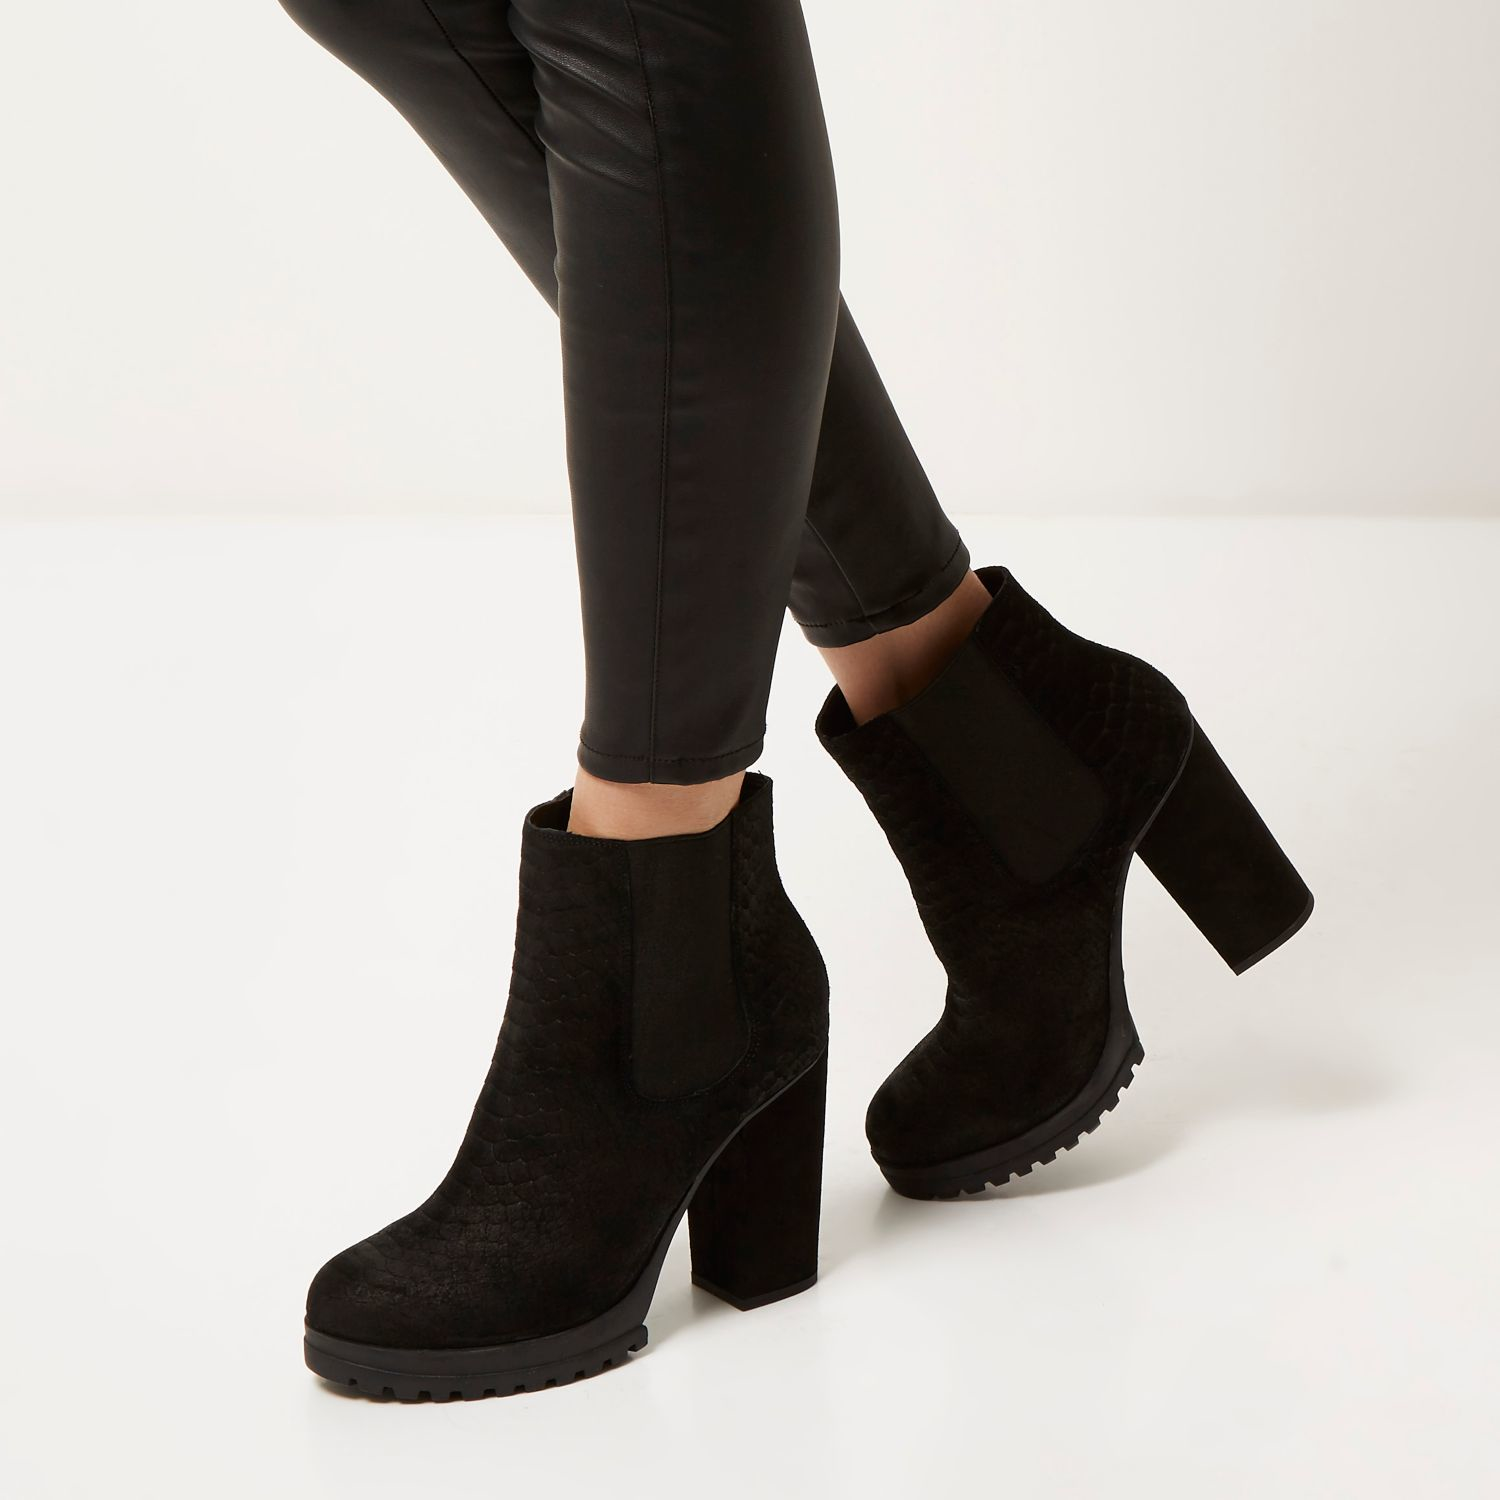 815369097464 River Island Black Suede Heeled Ankle Boots in Black - Lyst